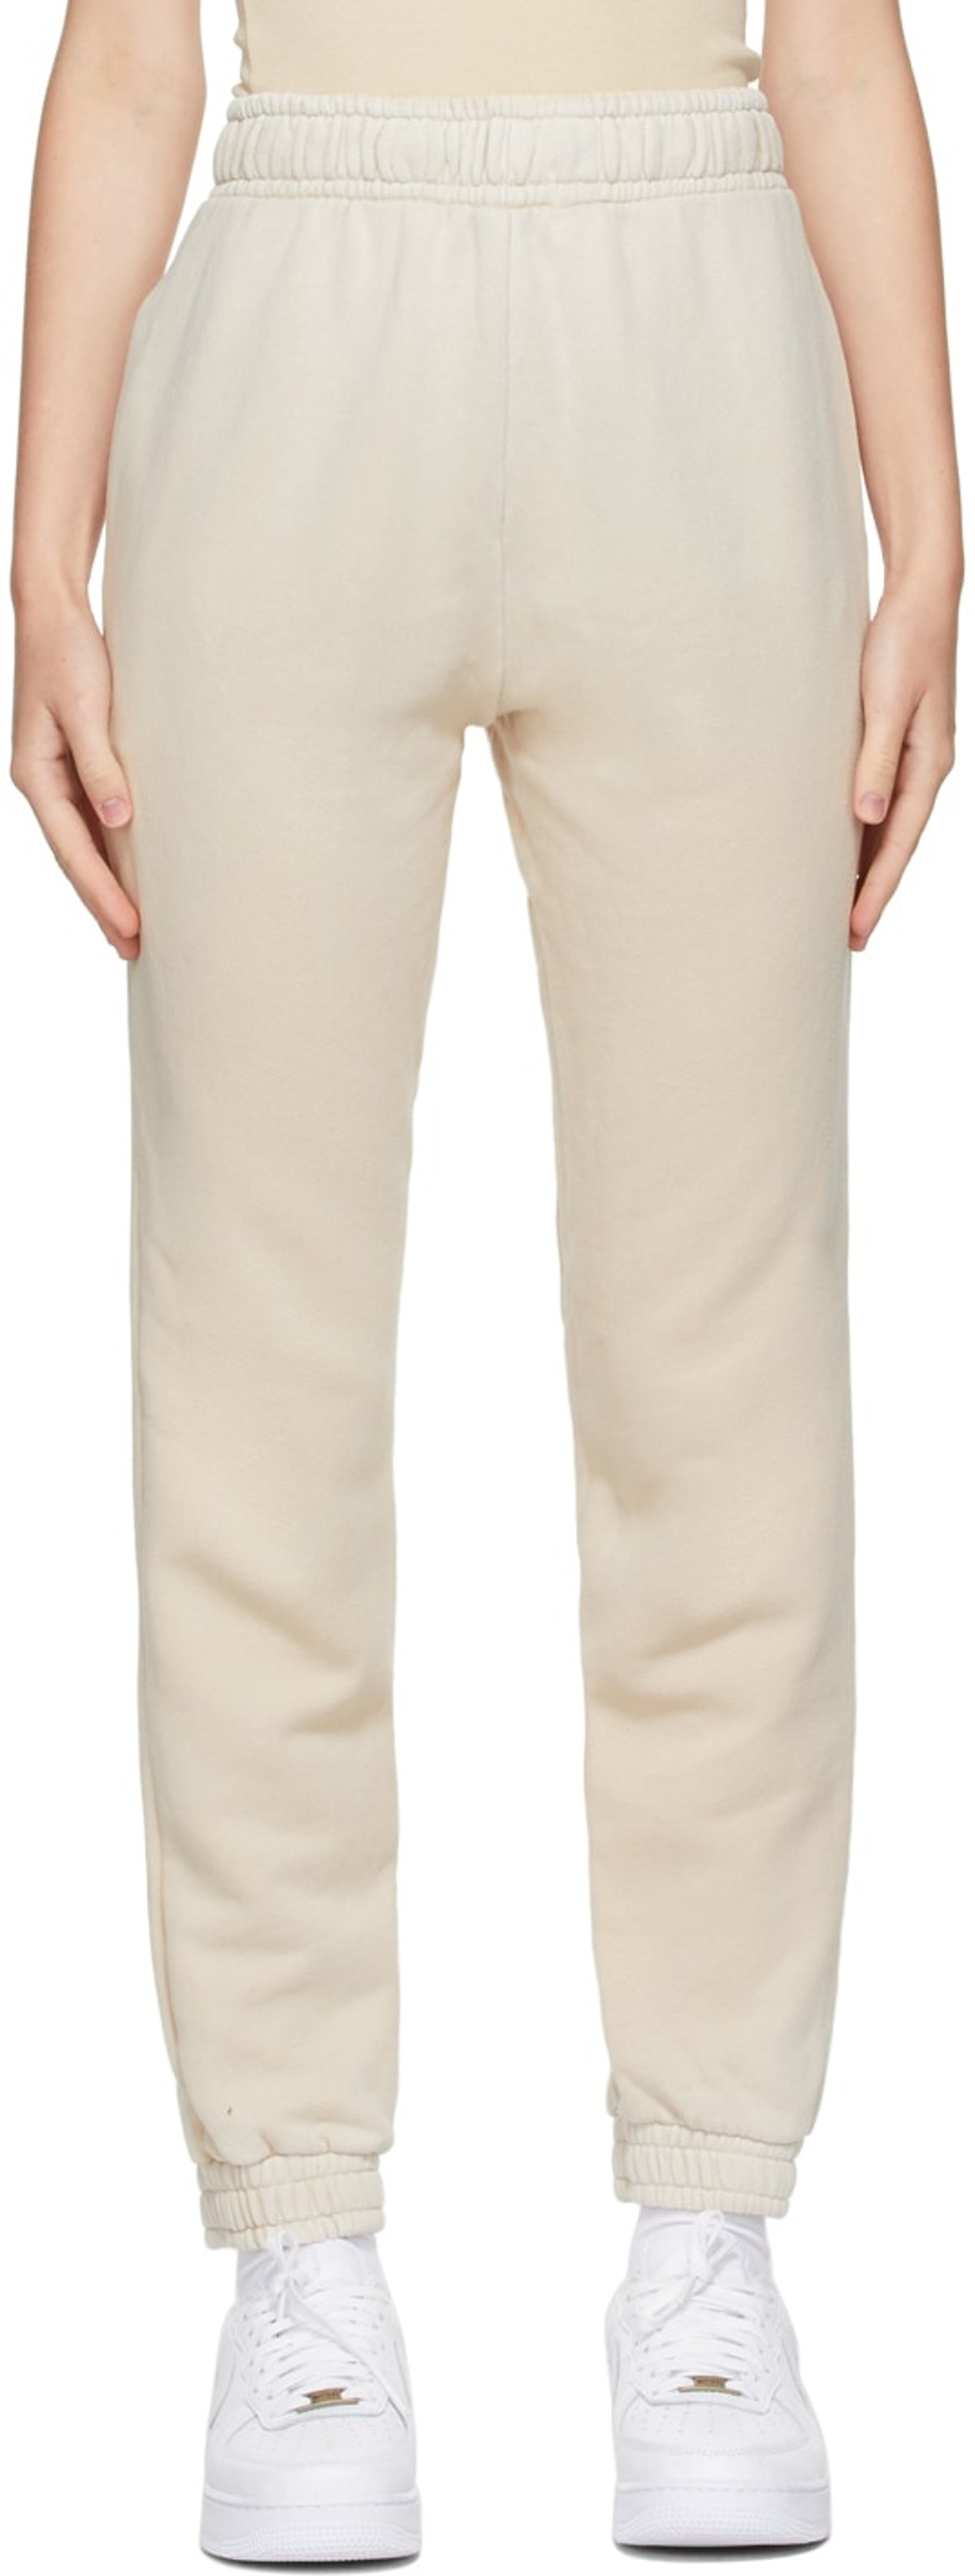 Beige Brooklyn Lounge Pants from COTTON CITIZEN, available to shop on SSENSE.